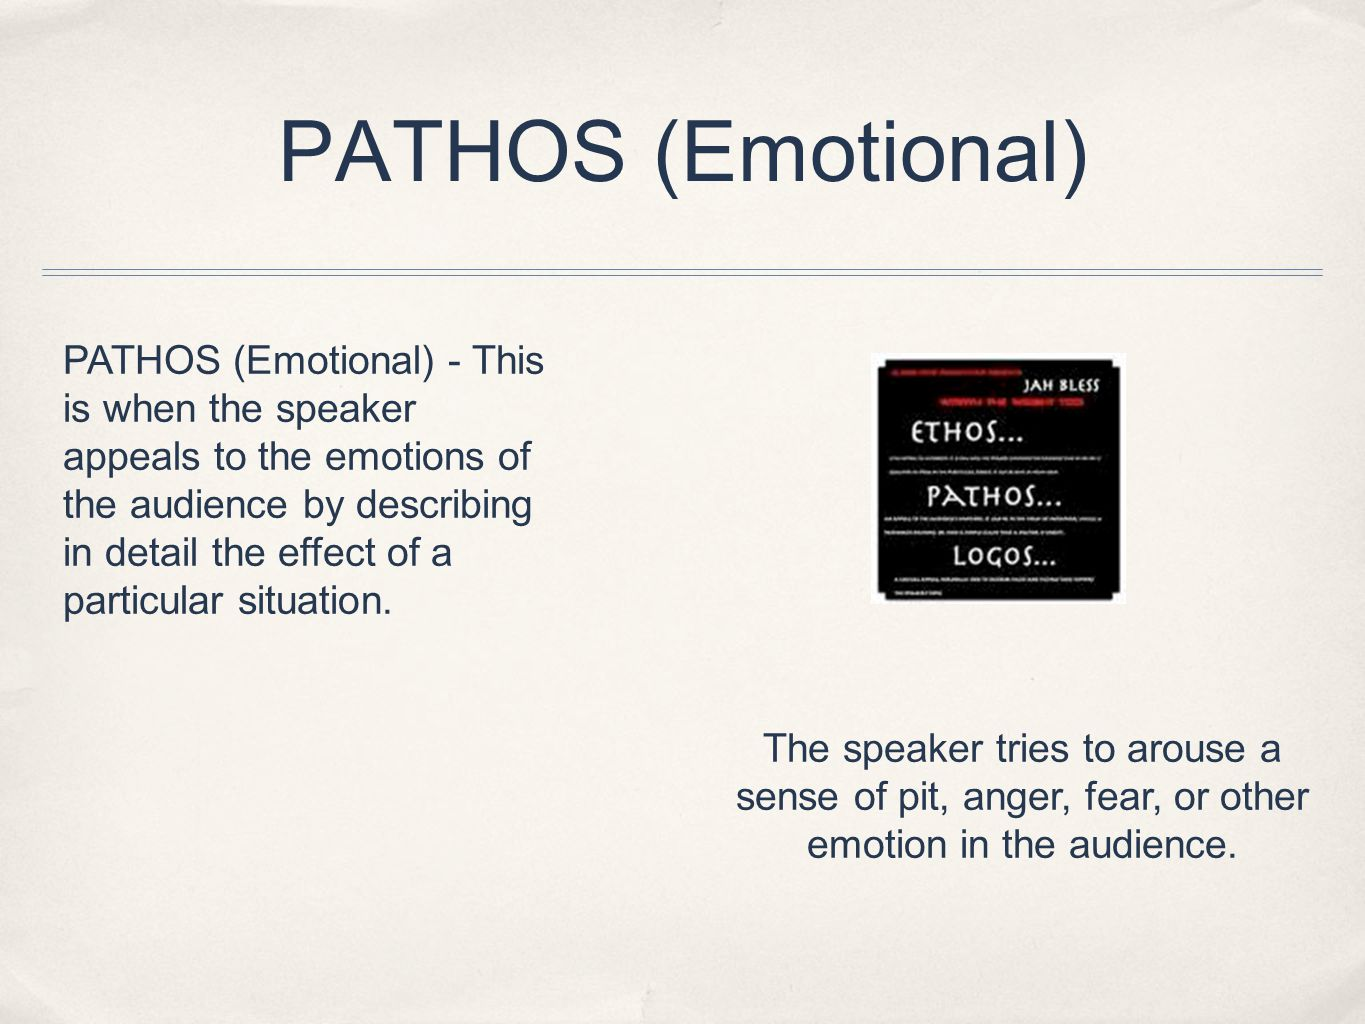 PATHOS (Emotional) PATHOS (Emotional) - This is when the speaker appeals to the emotions of the audience by describing in detail the effect of a particular situation.